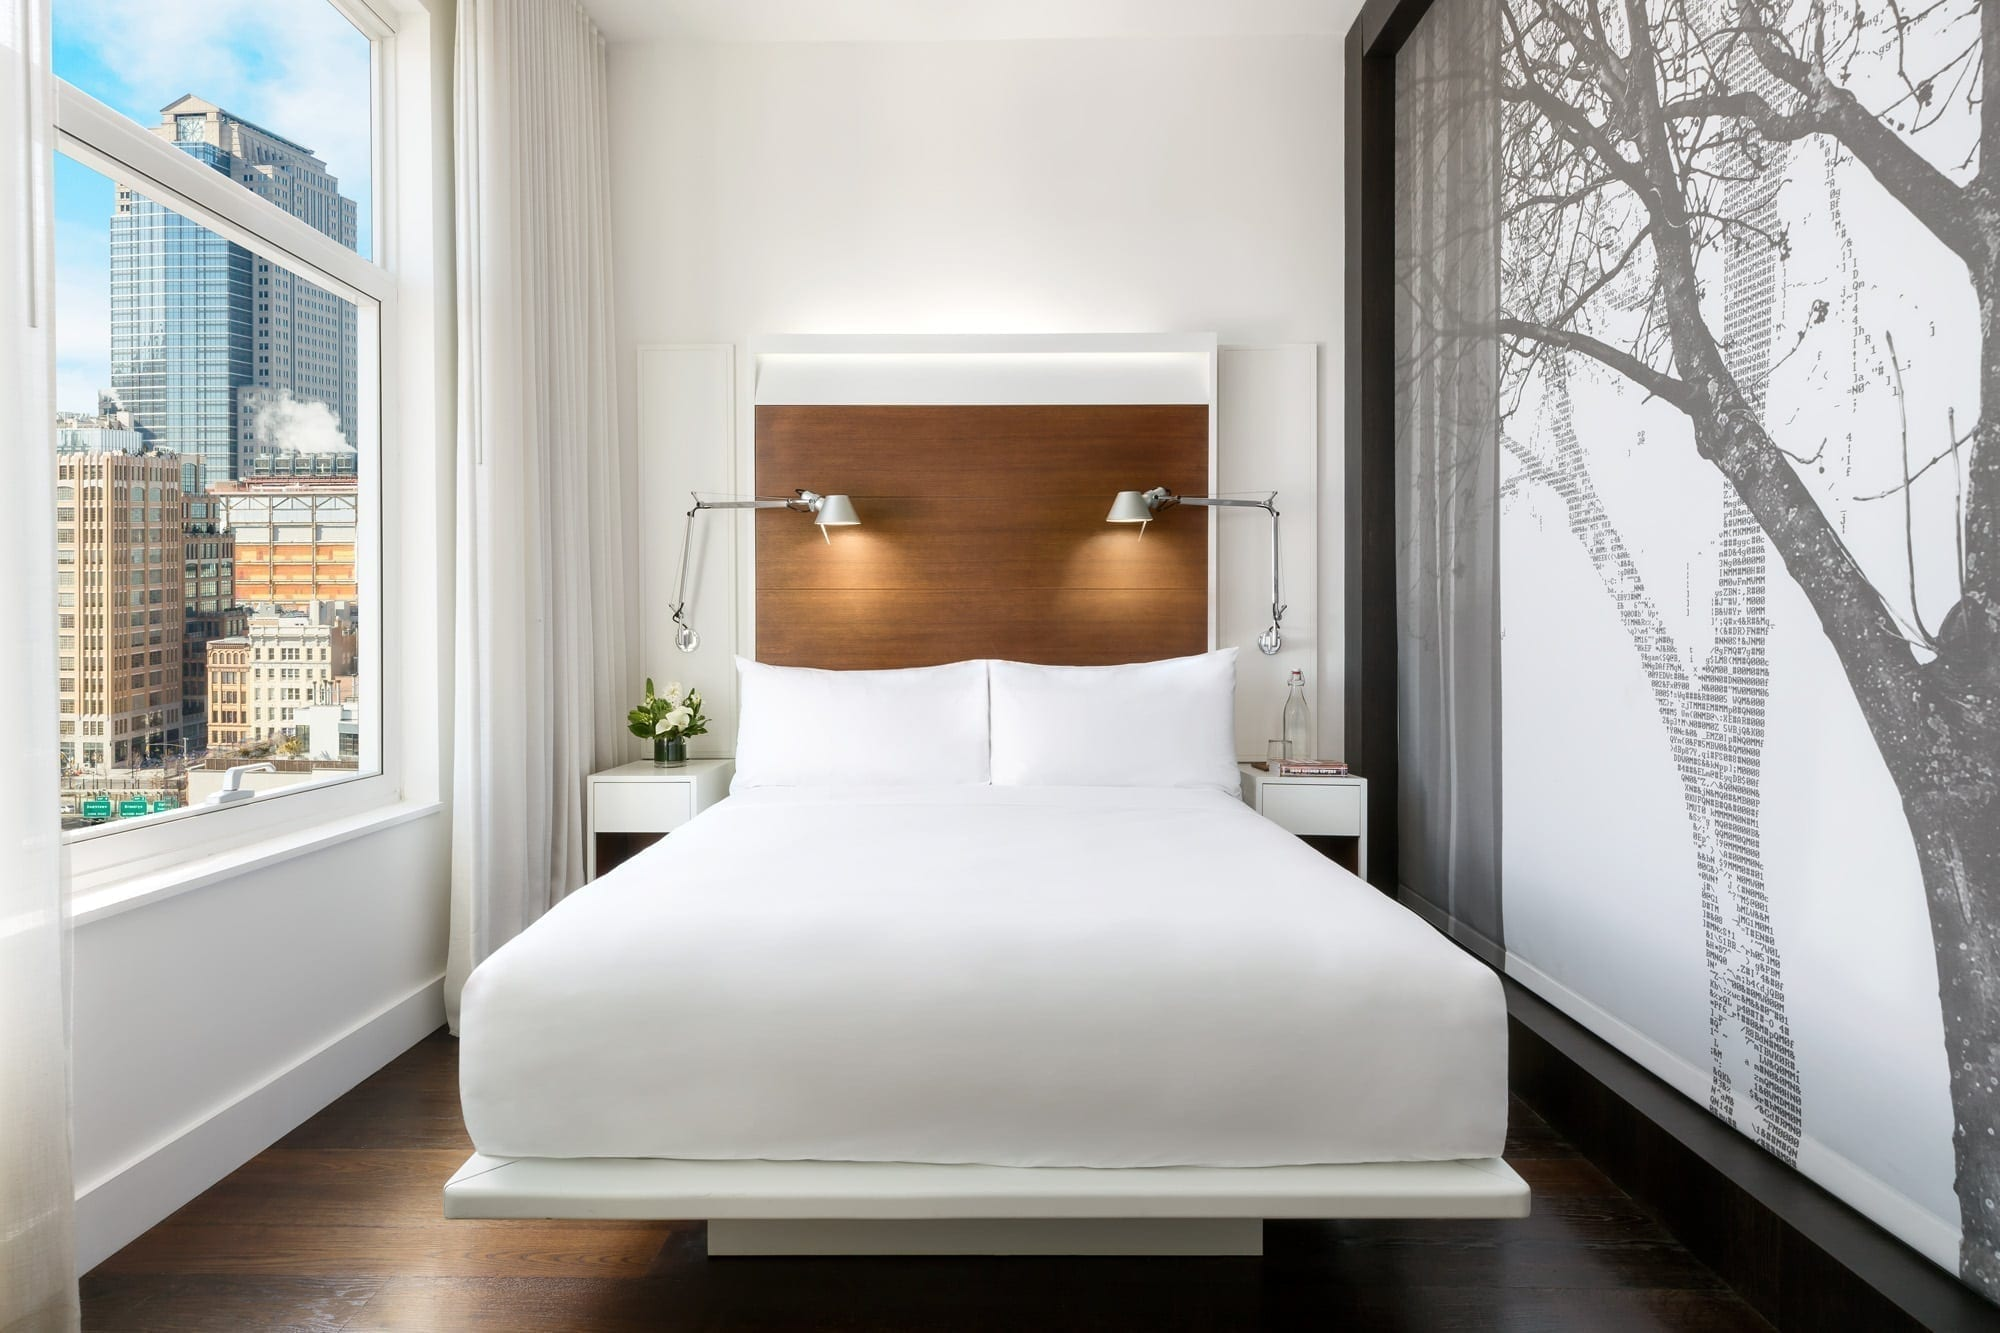 View from the foot of the queen sized bed inside a guestroom of The James Hotel SoHo. To one side is a wall panel with artwork of a tree in silhouette. At the right, there is a window looking to the city outside.